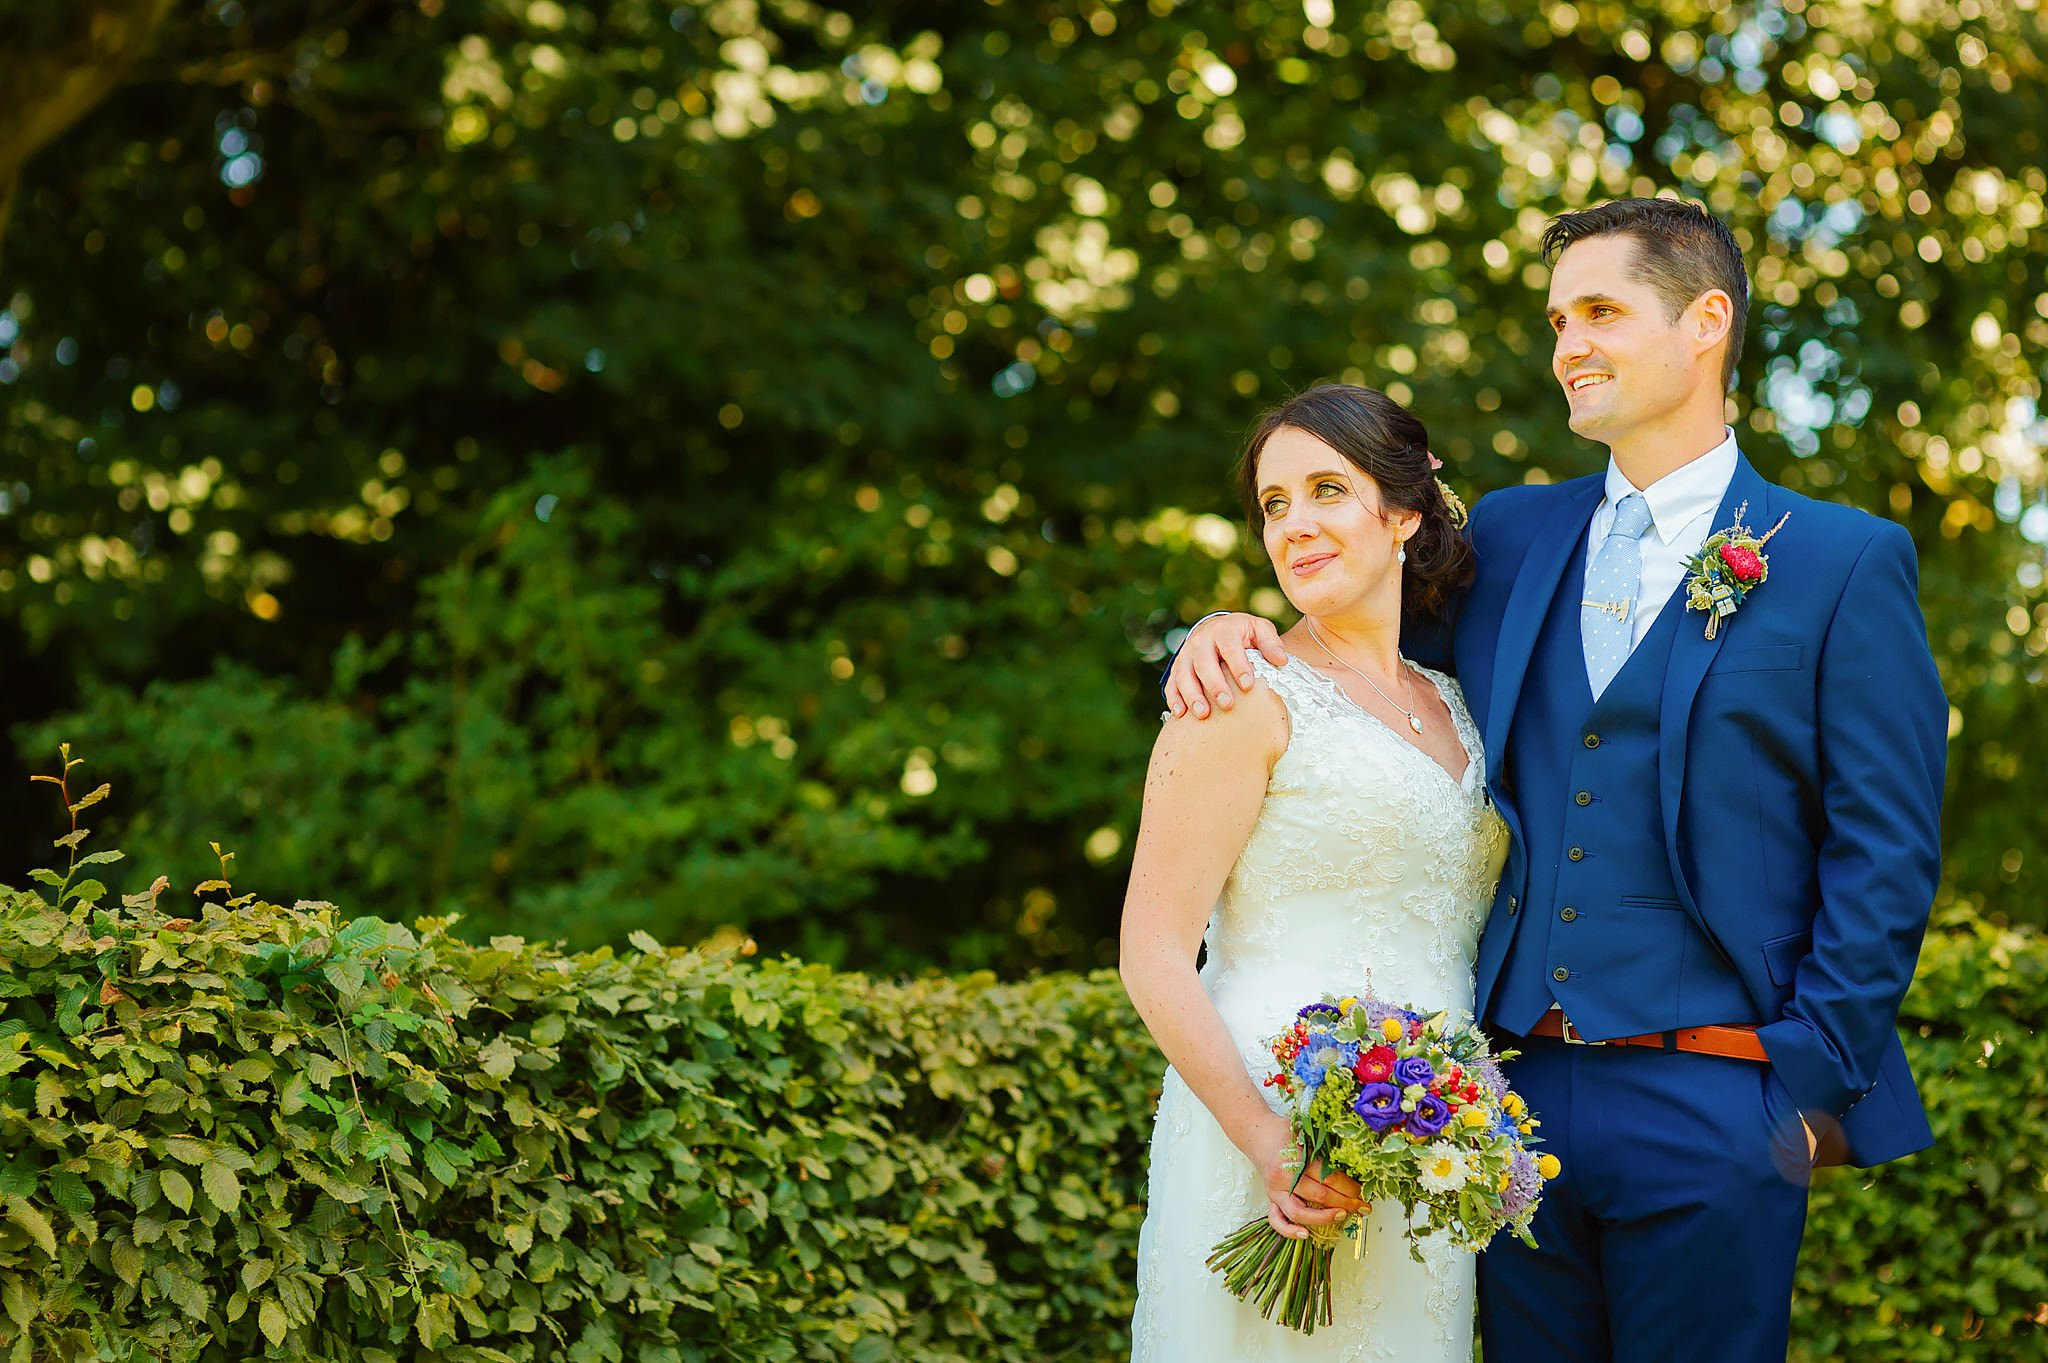 Wedding photography at Hellens Manor in Herefordshire, West Midlands | Shelley + Ian 63